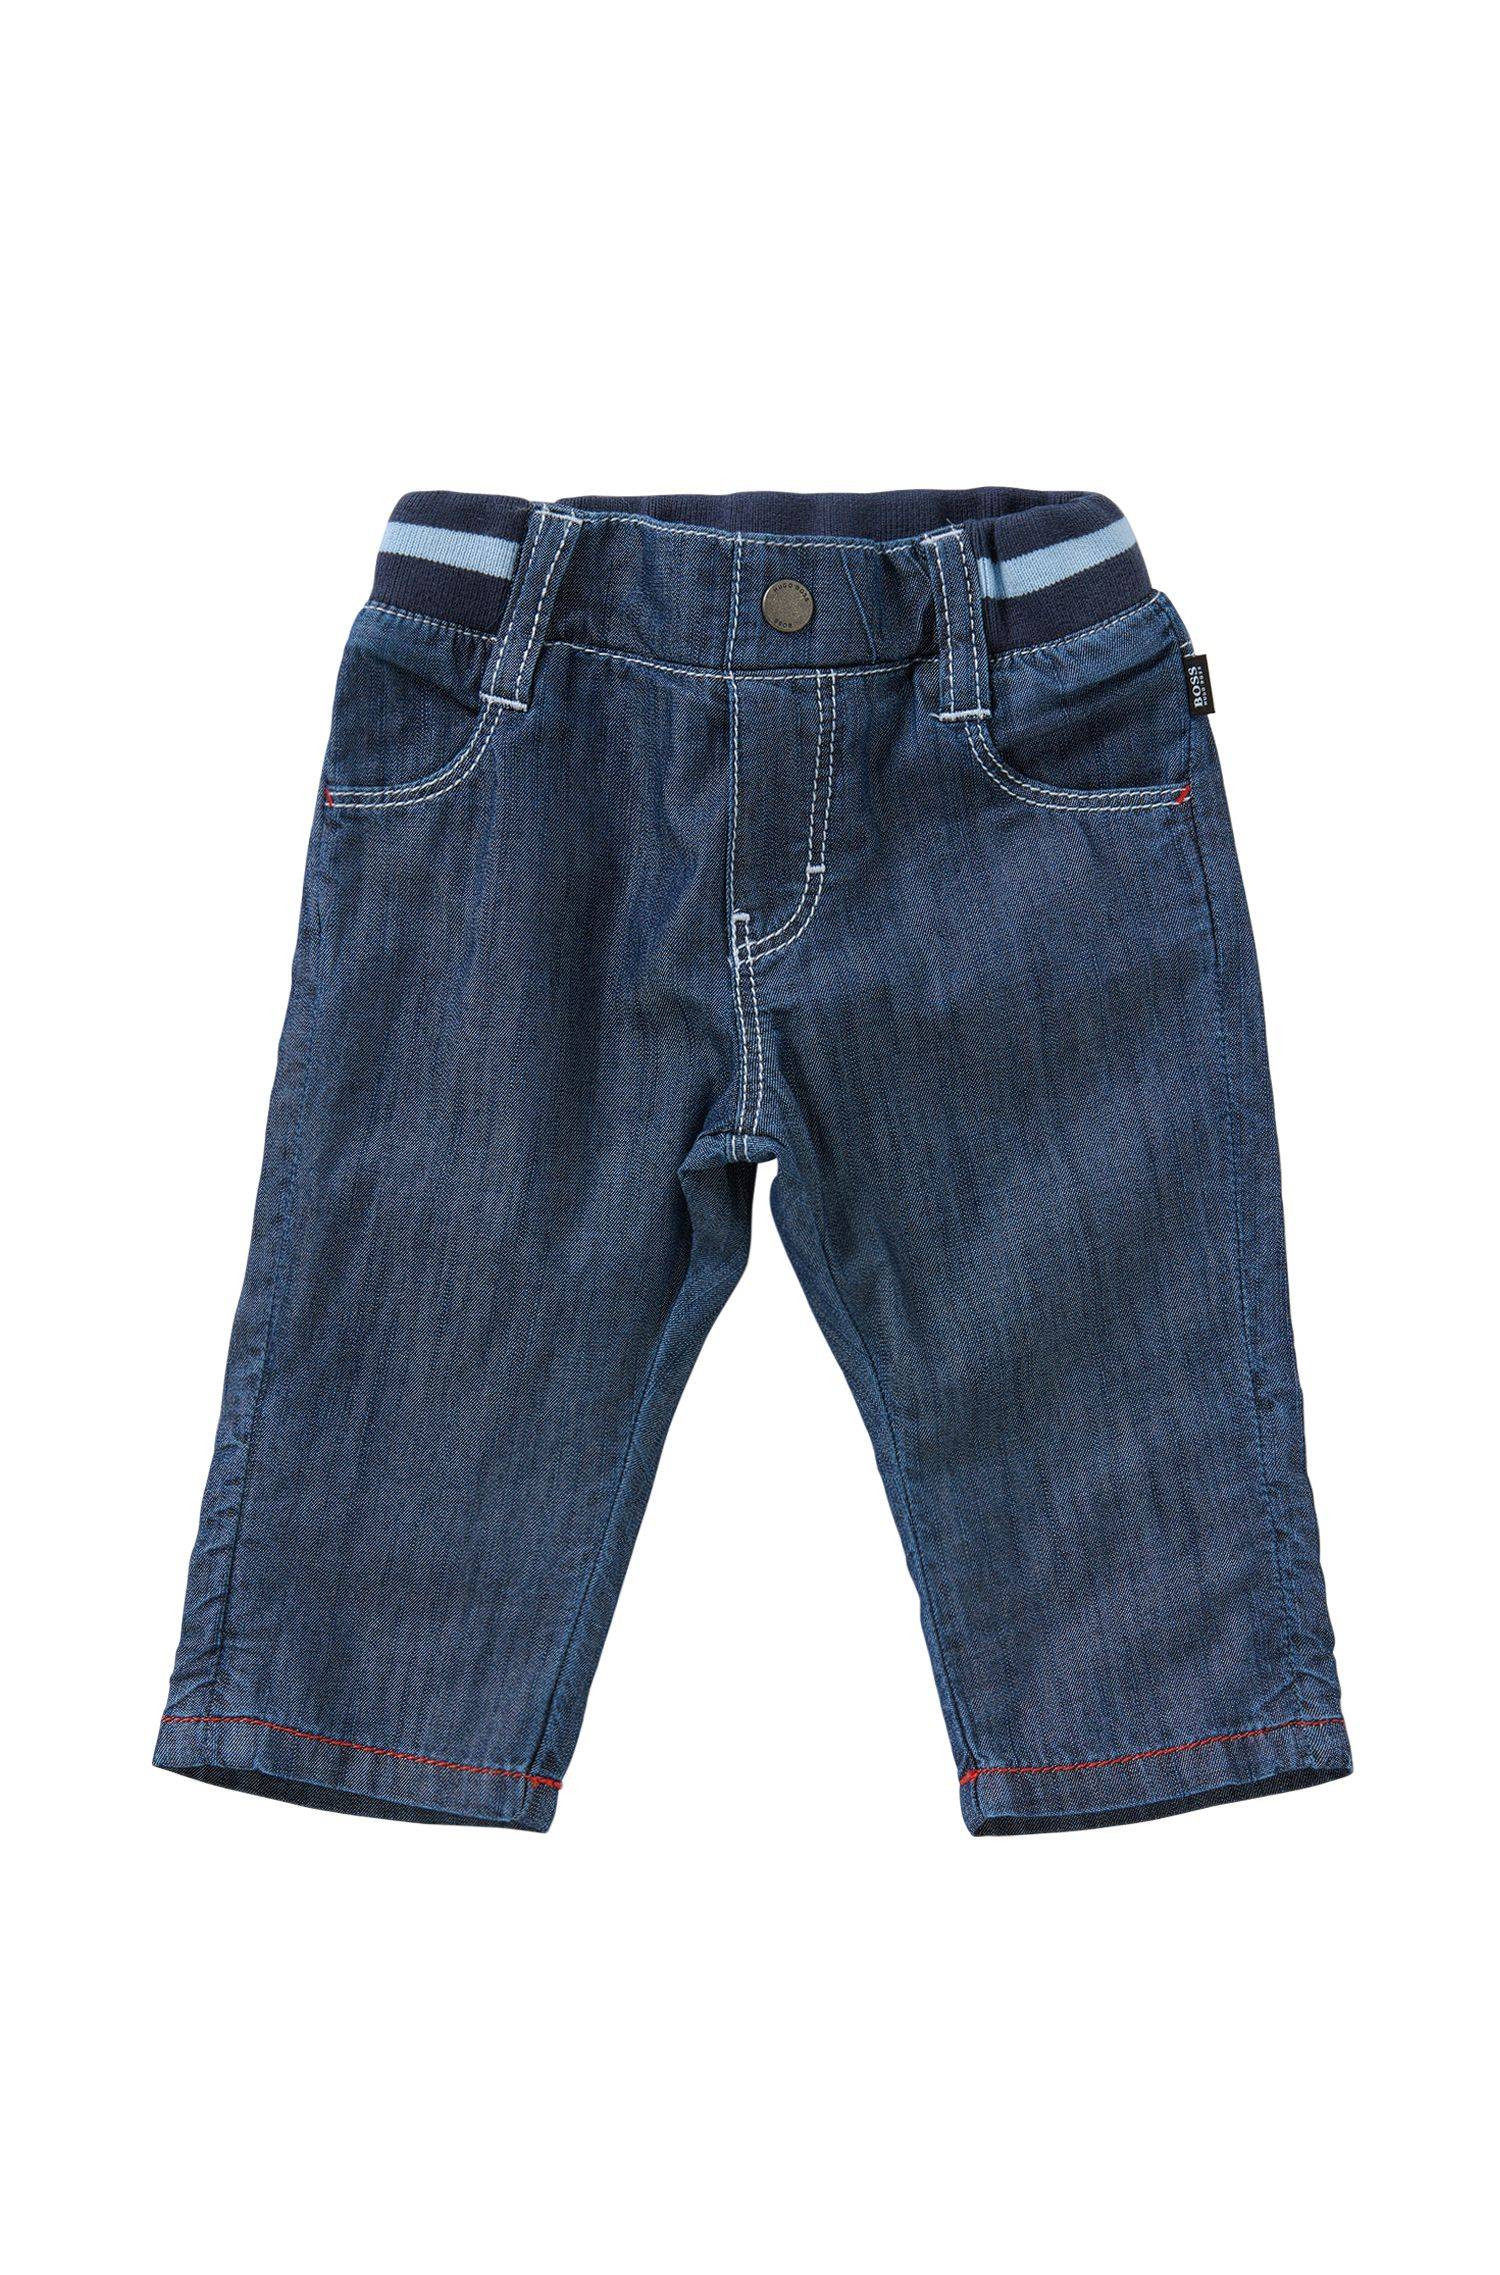 Baby-Baumwollhose in Denim-Optik mit Gummibund: 'J94153'